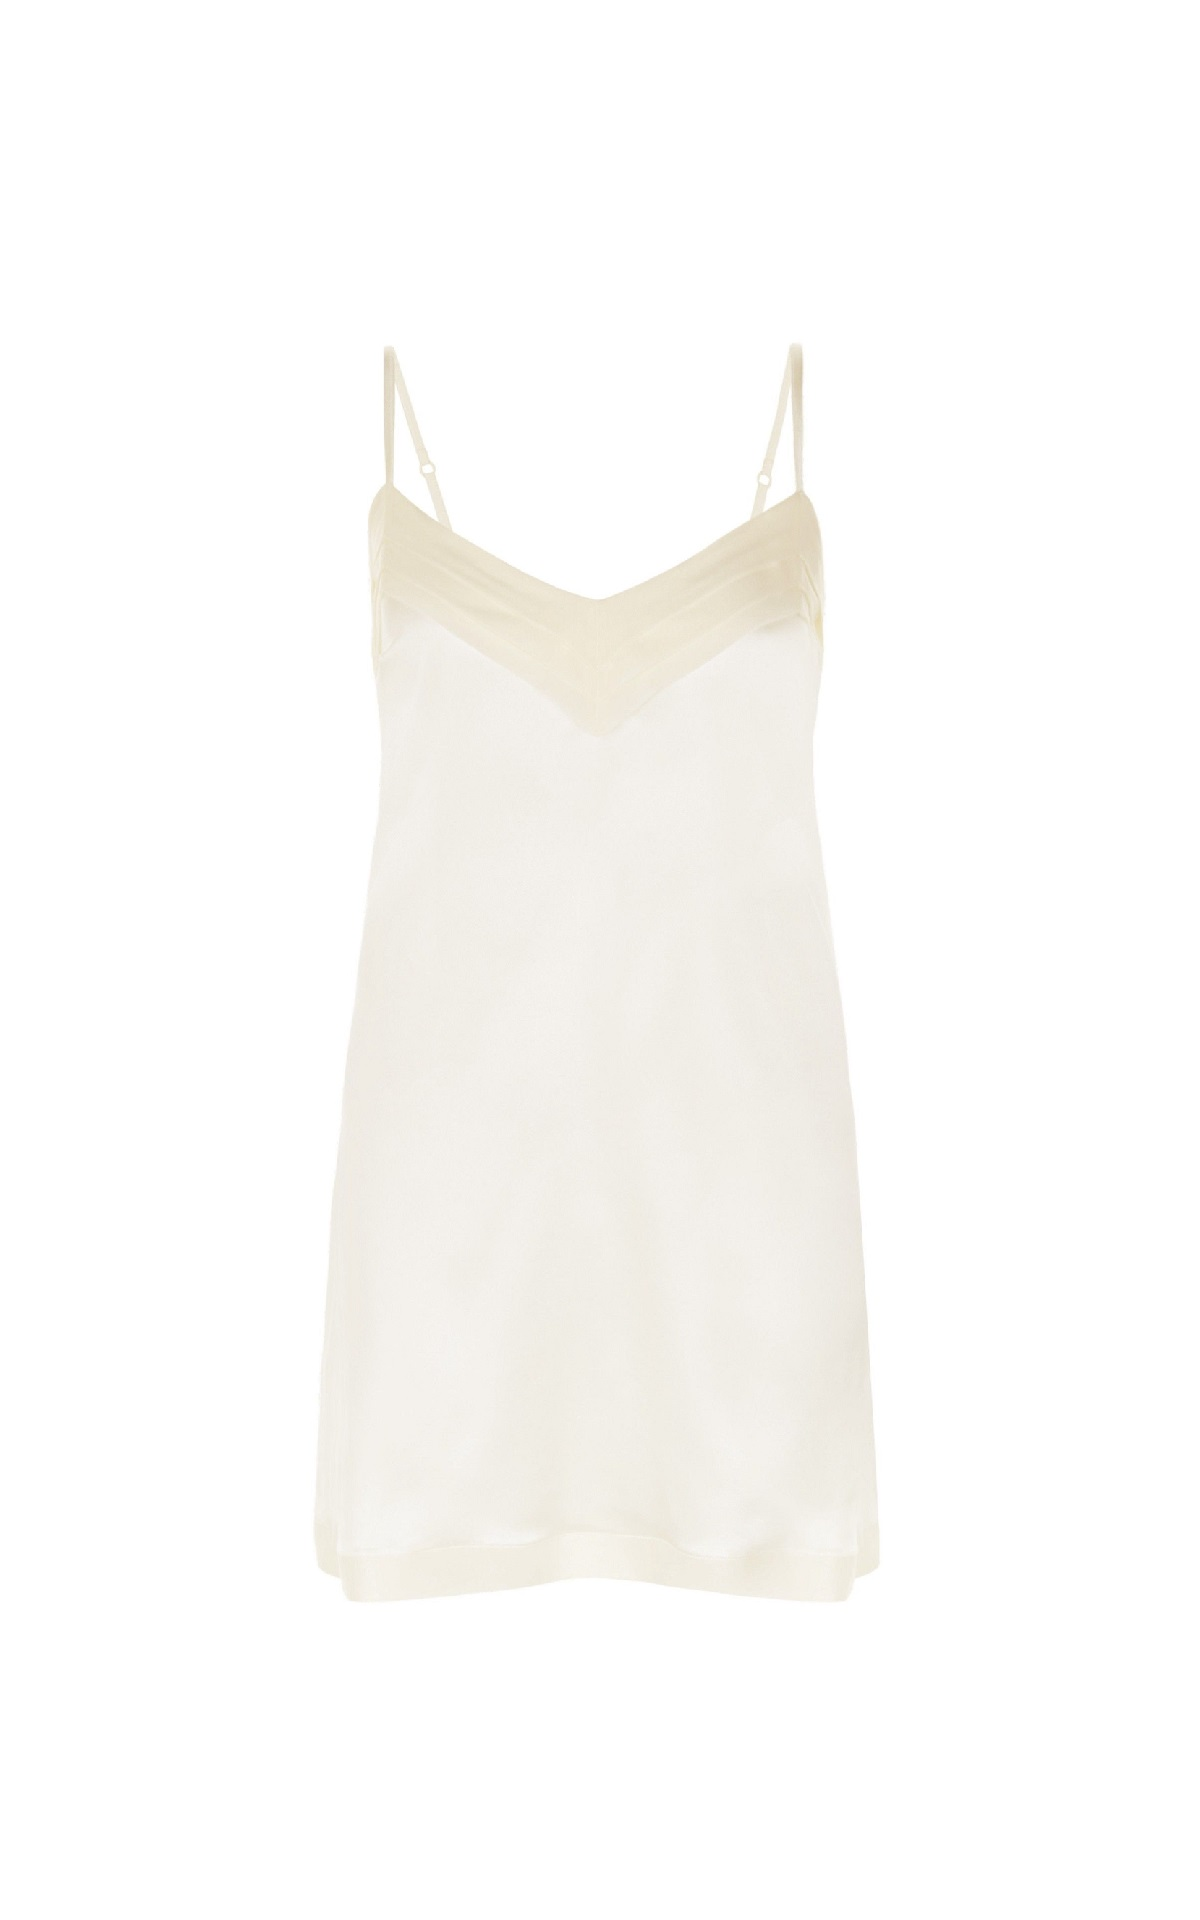 Beige slip dress La Perla